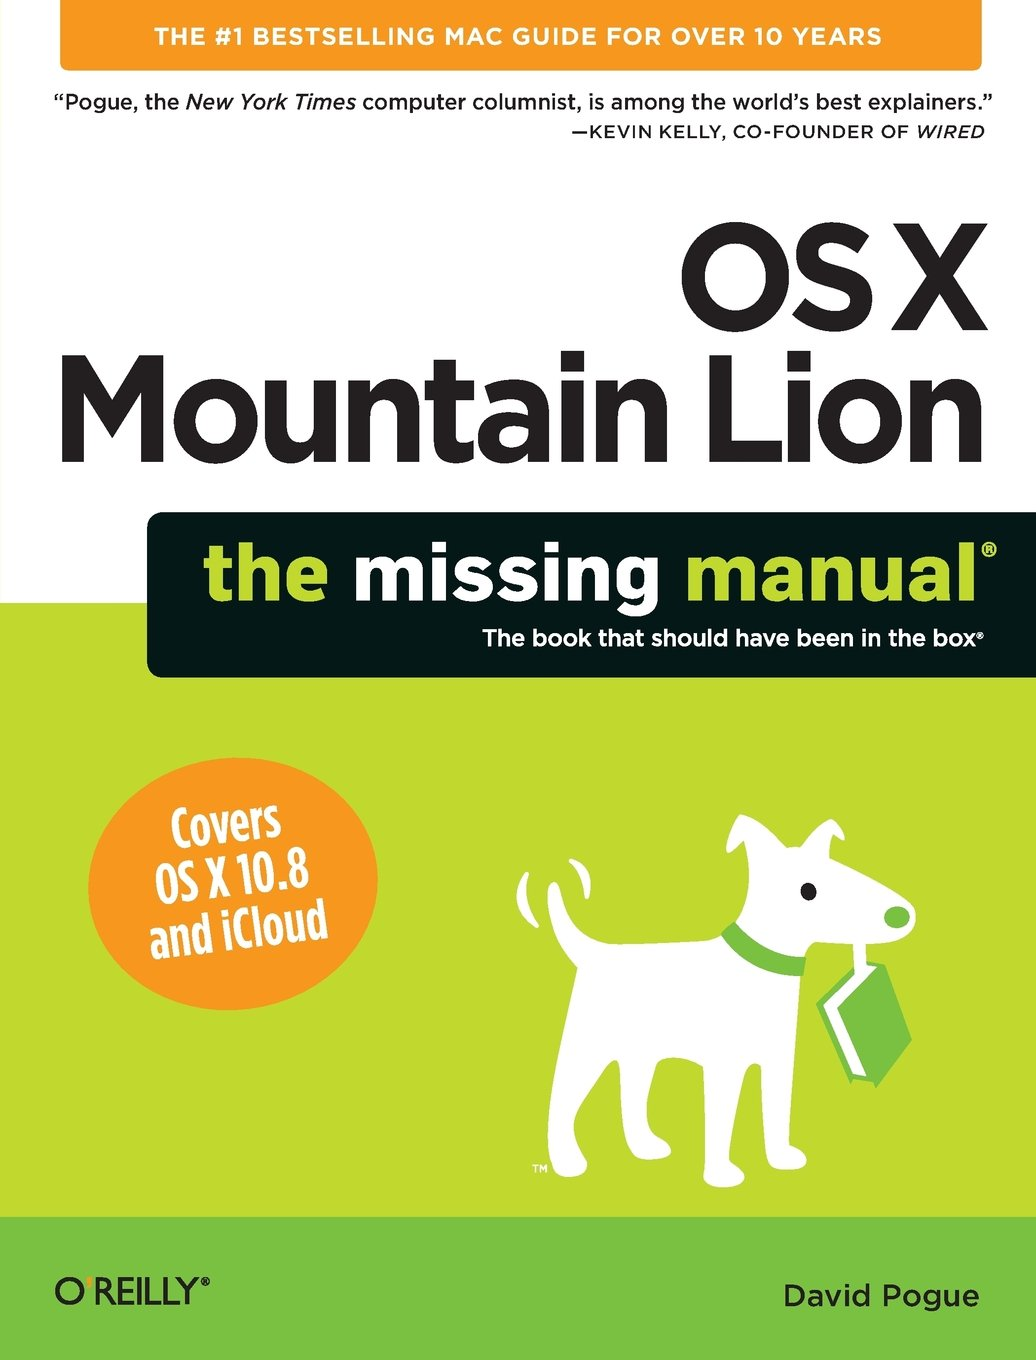 Image OfOS X Mountain Lion: The Missing Manual